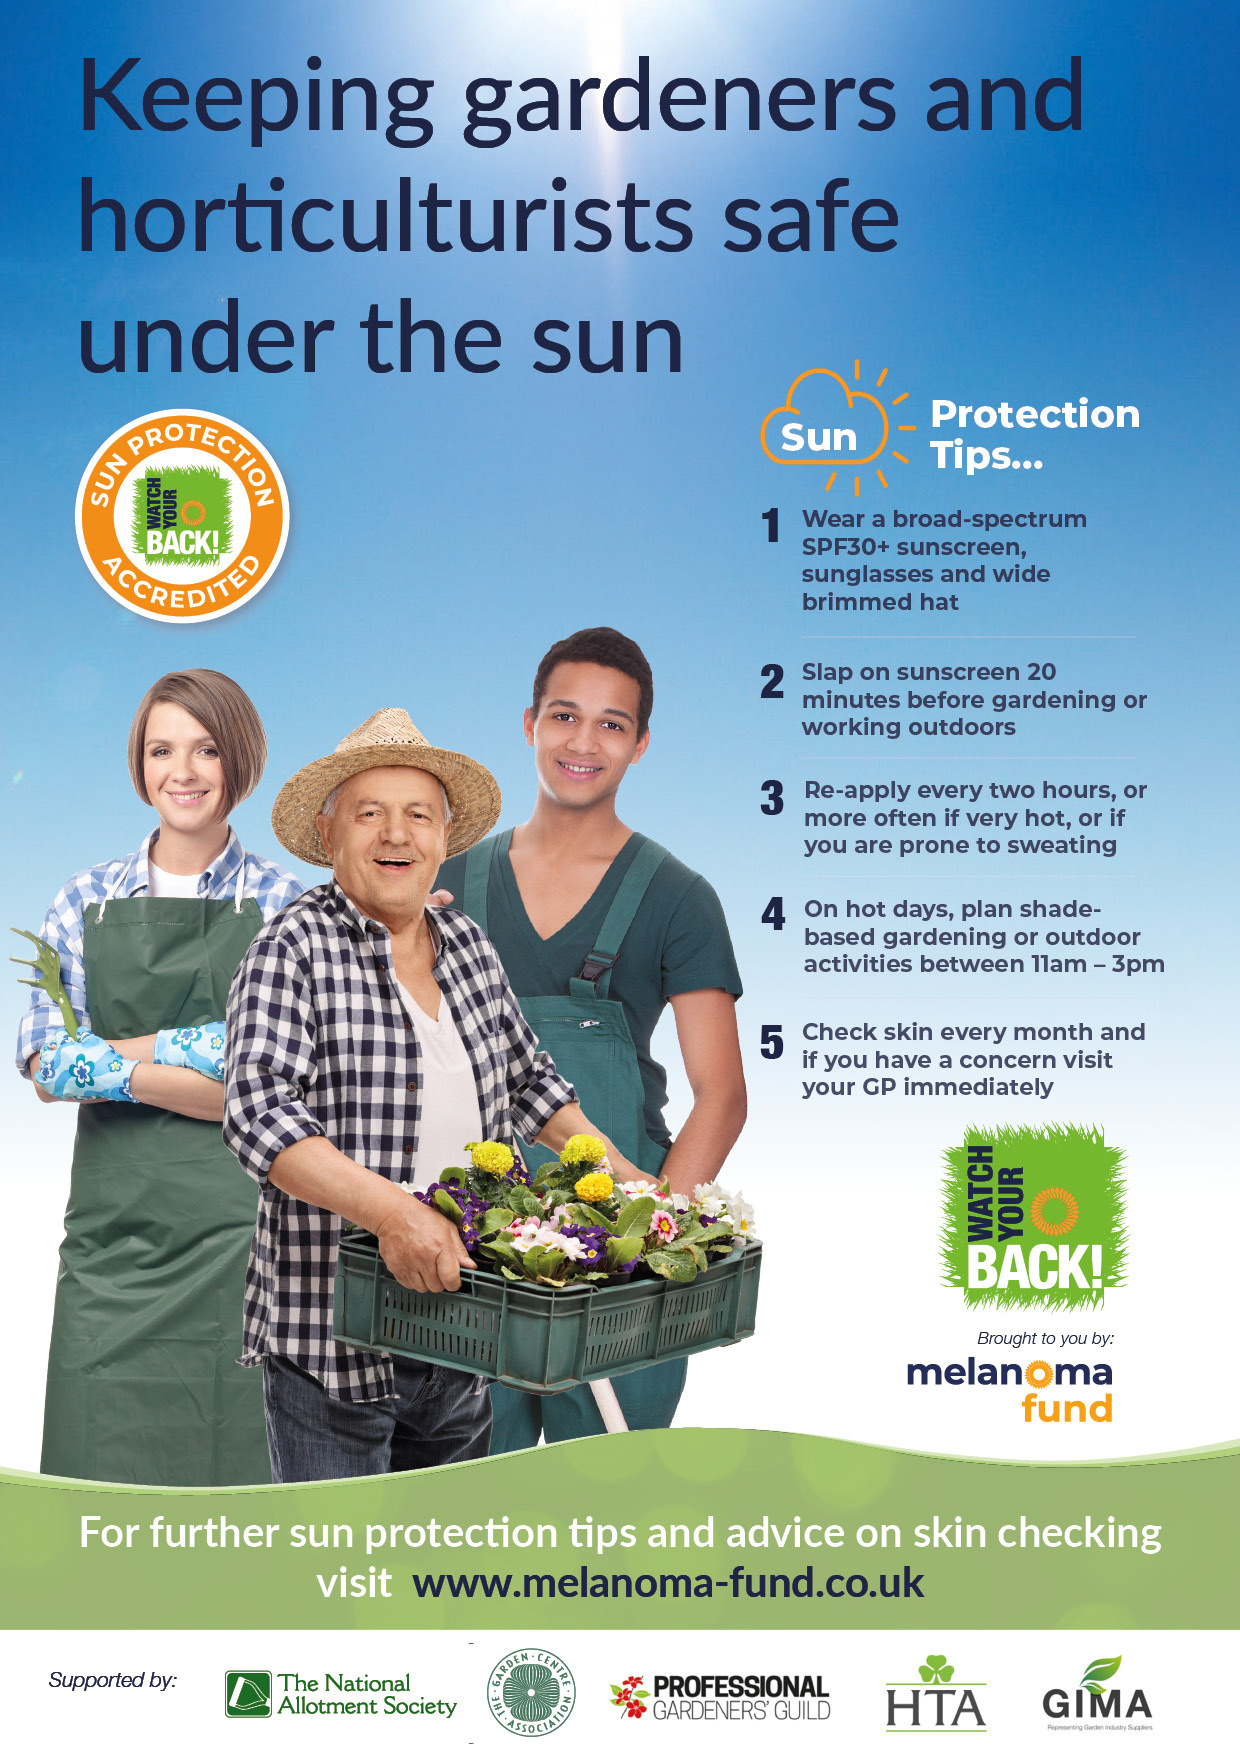 Keeping gardeners and horticulturists safe under the sun